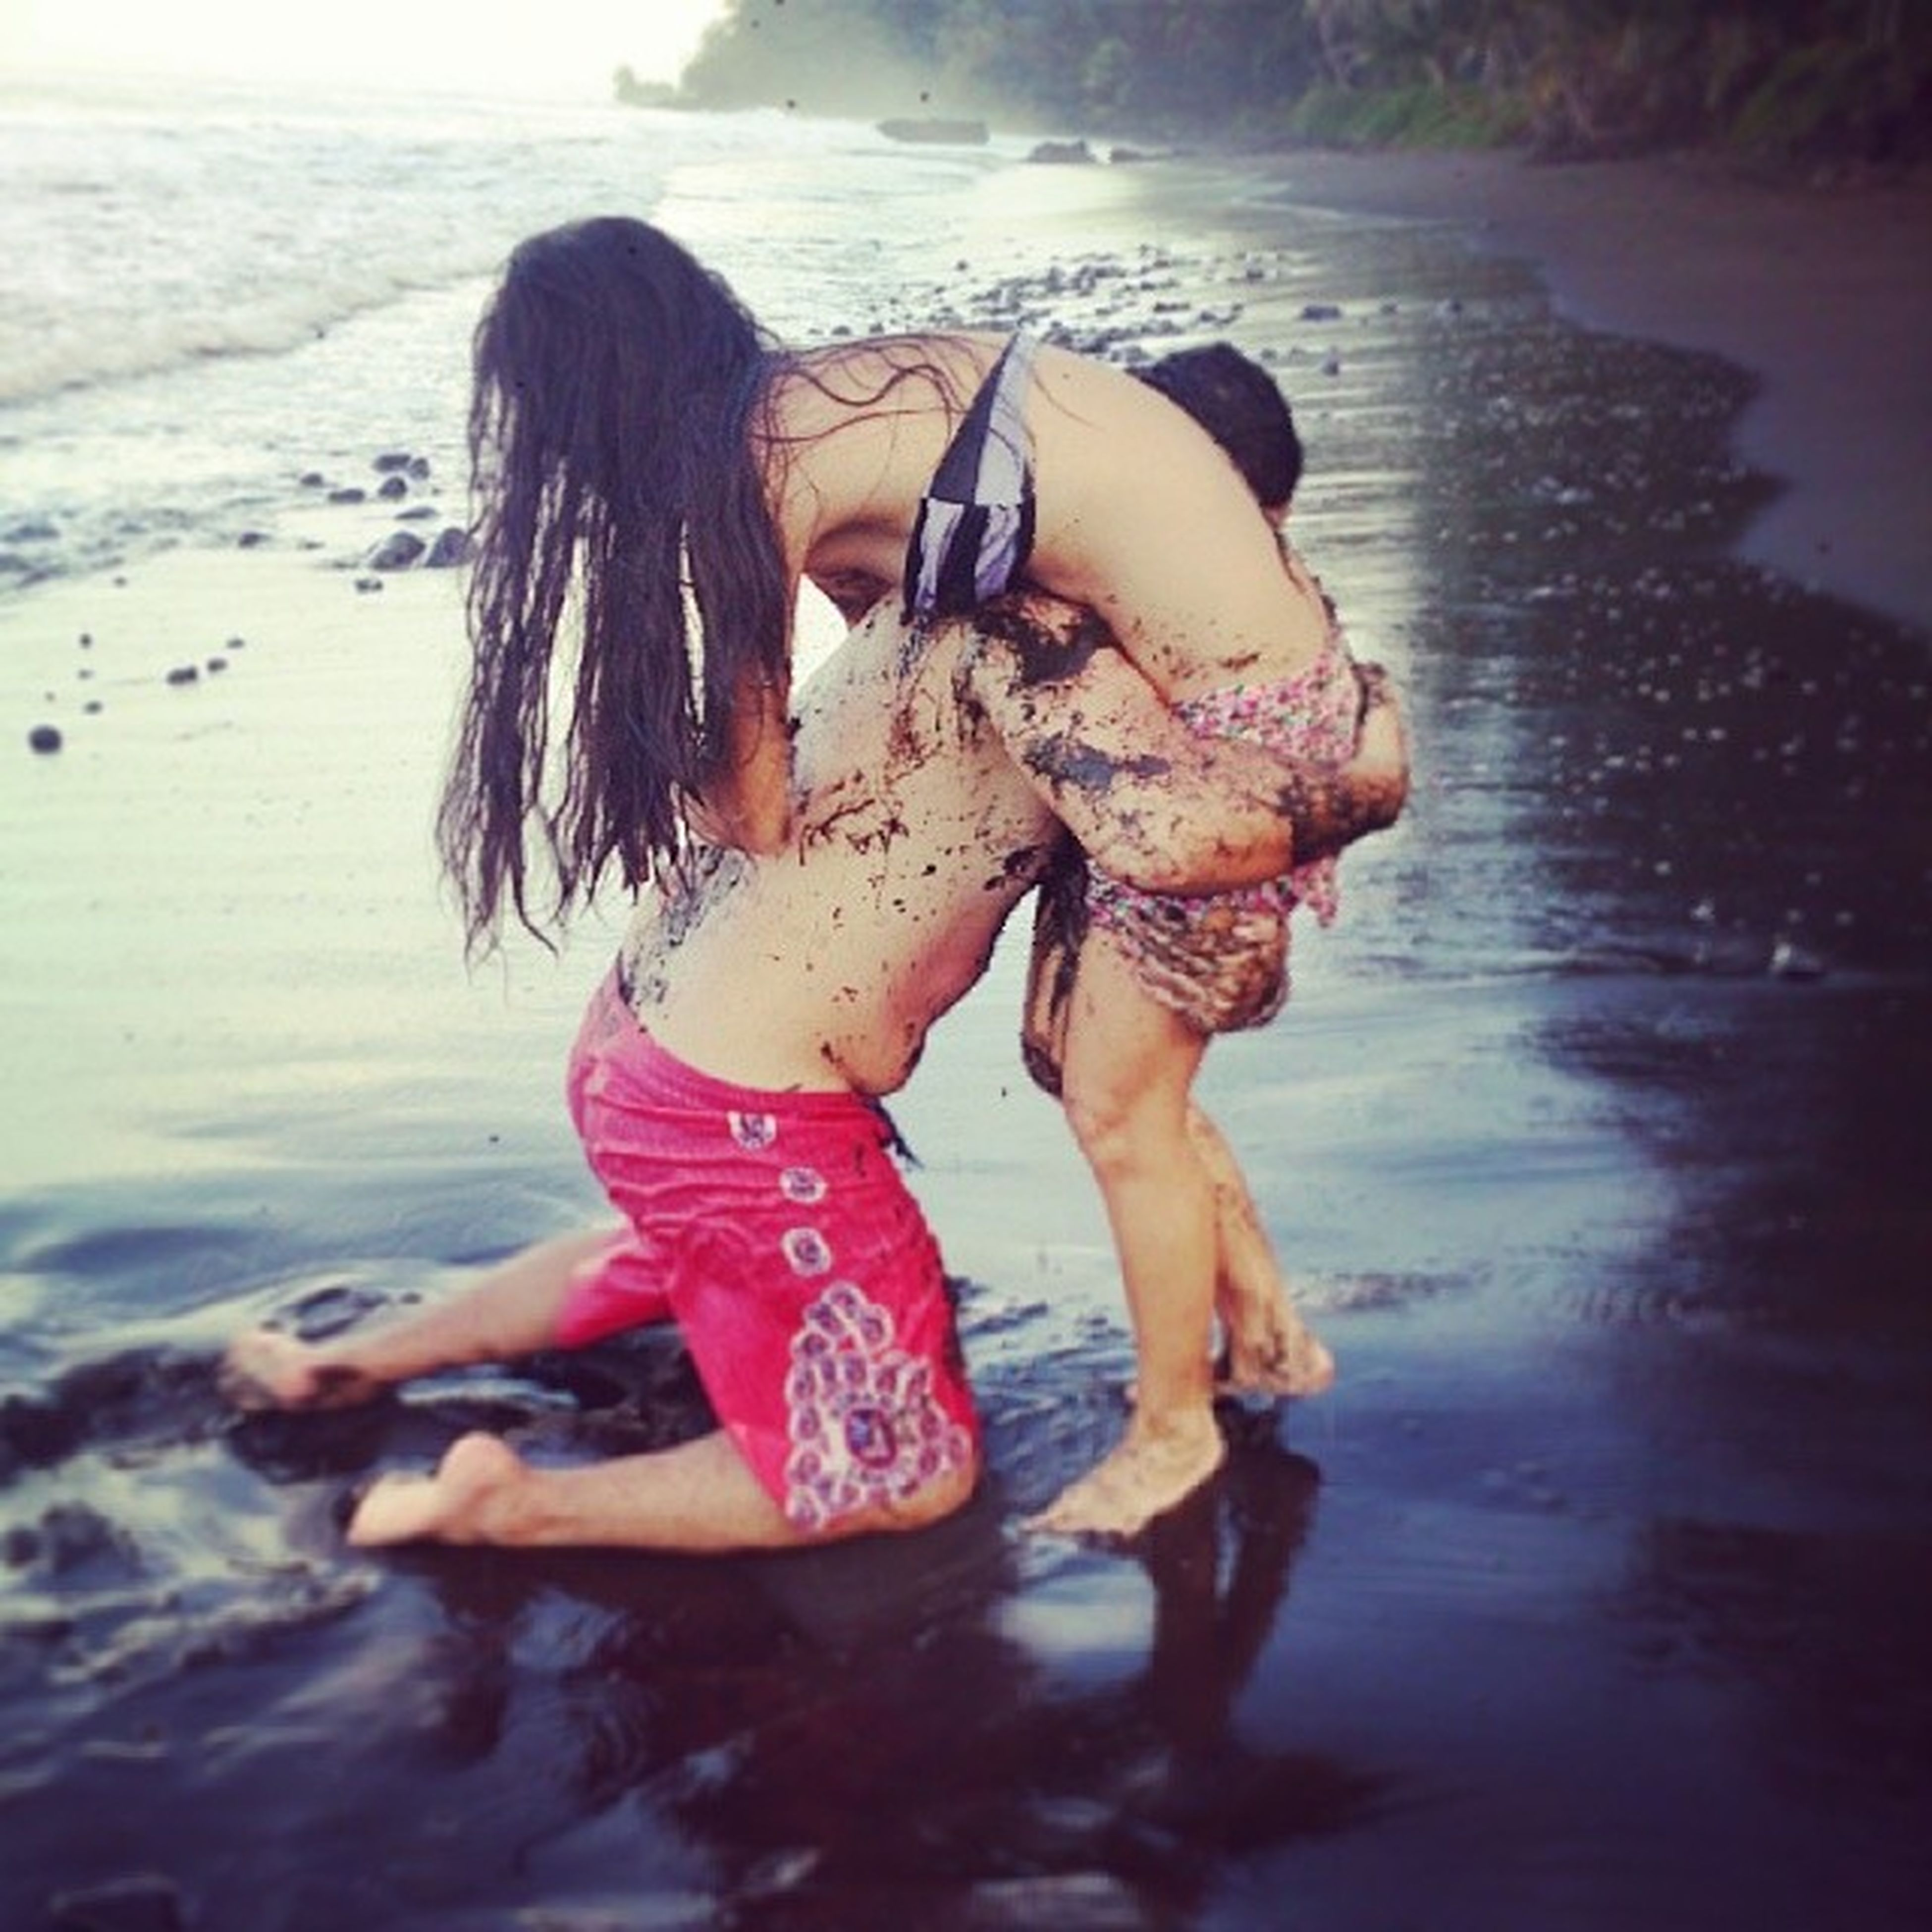 water, lifestyles, leisure activity, sea, full length, beach, girls, shore, vacations, casual clothing, childhood, person, rear view, young women, young adult, enjoyment, togetherness, elementary age